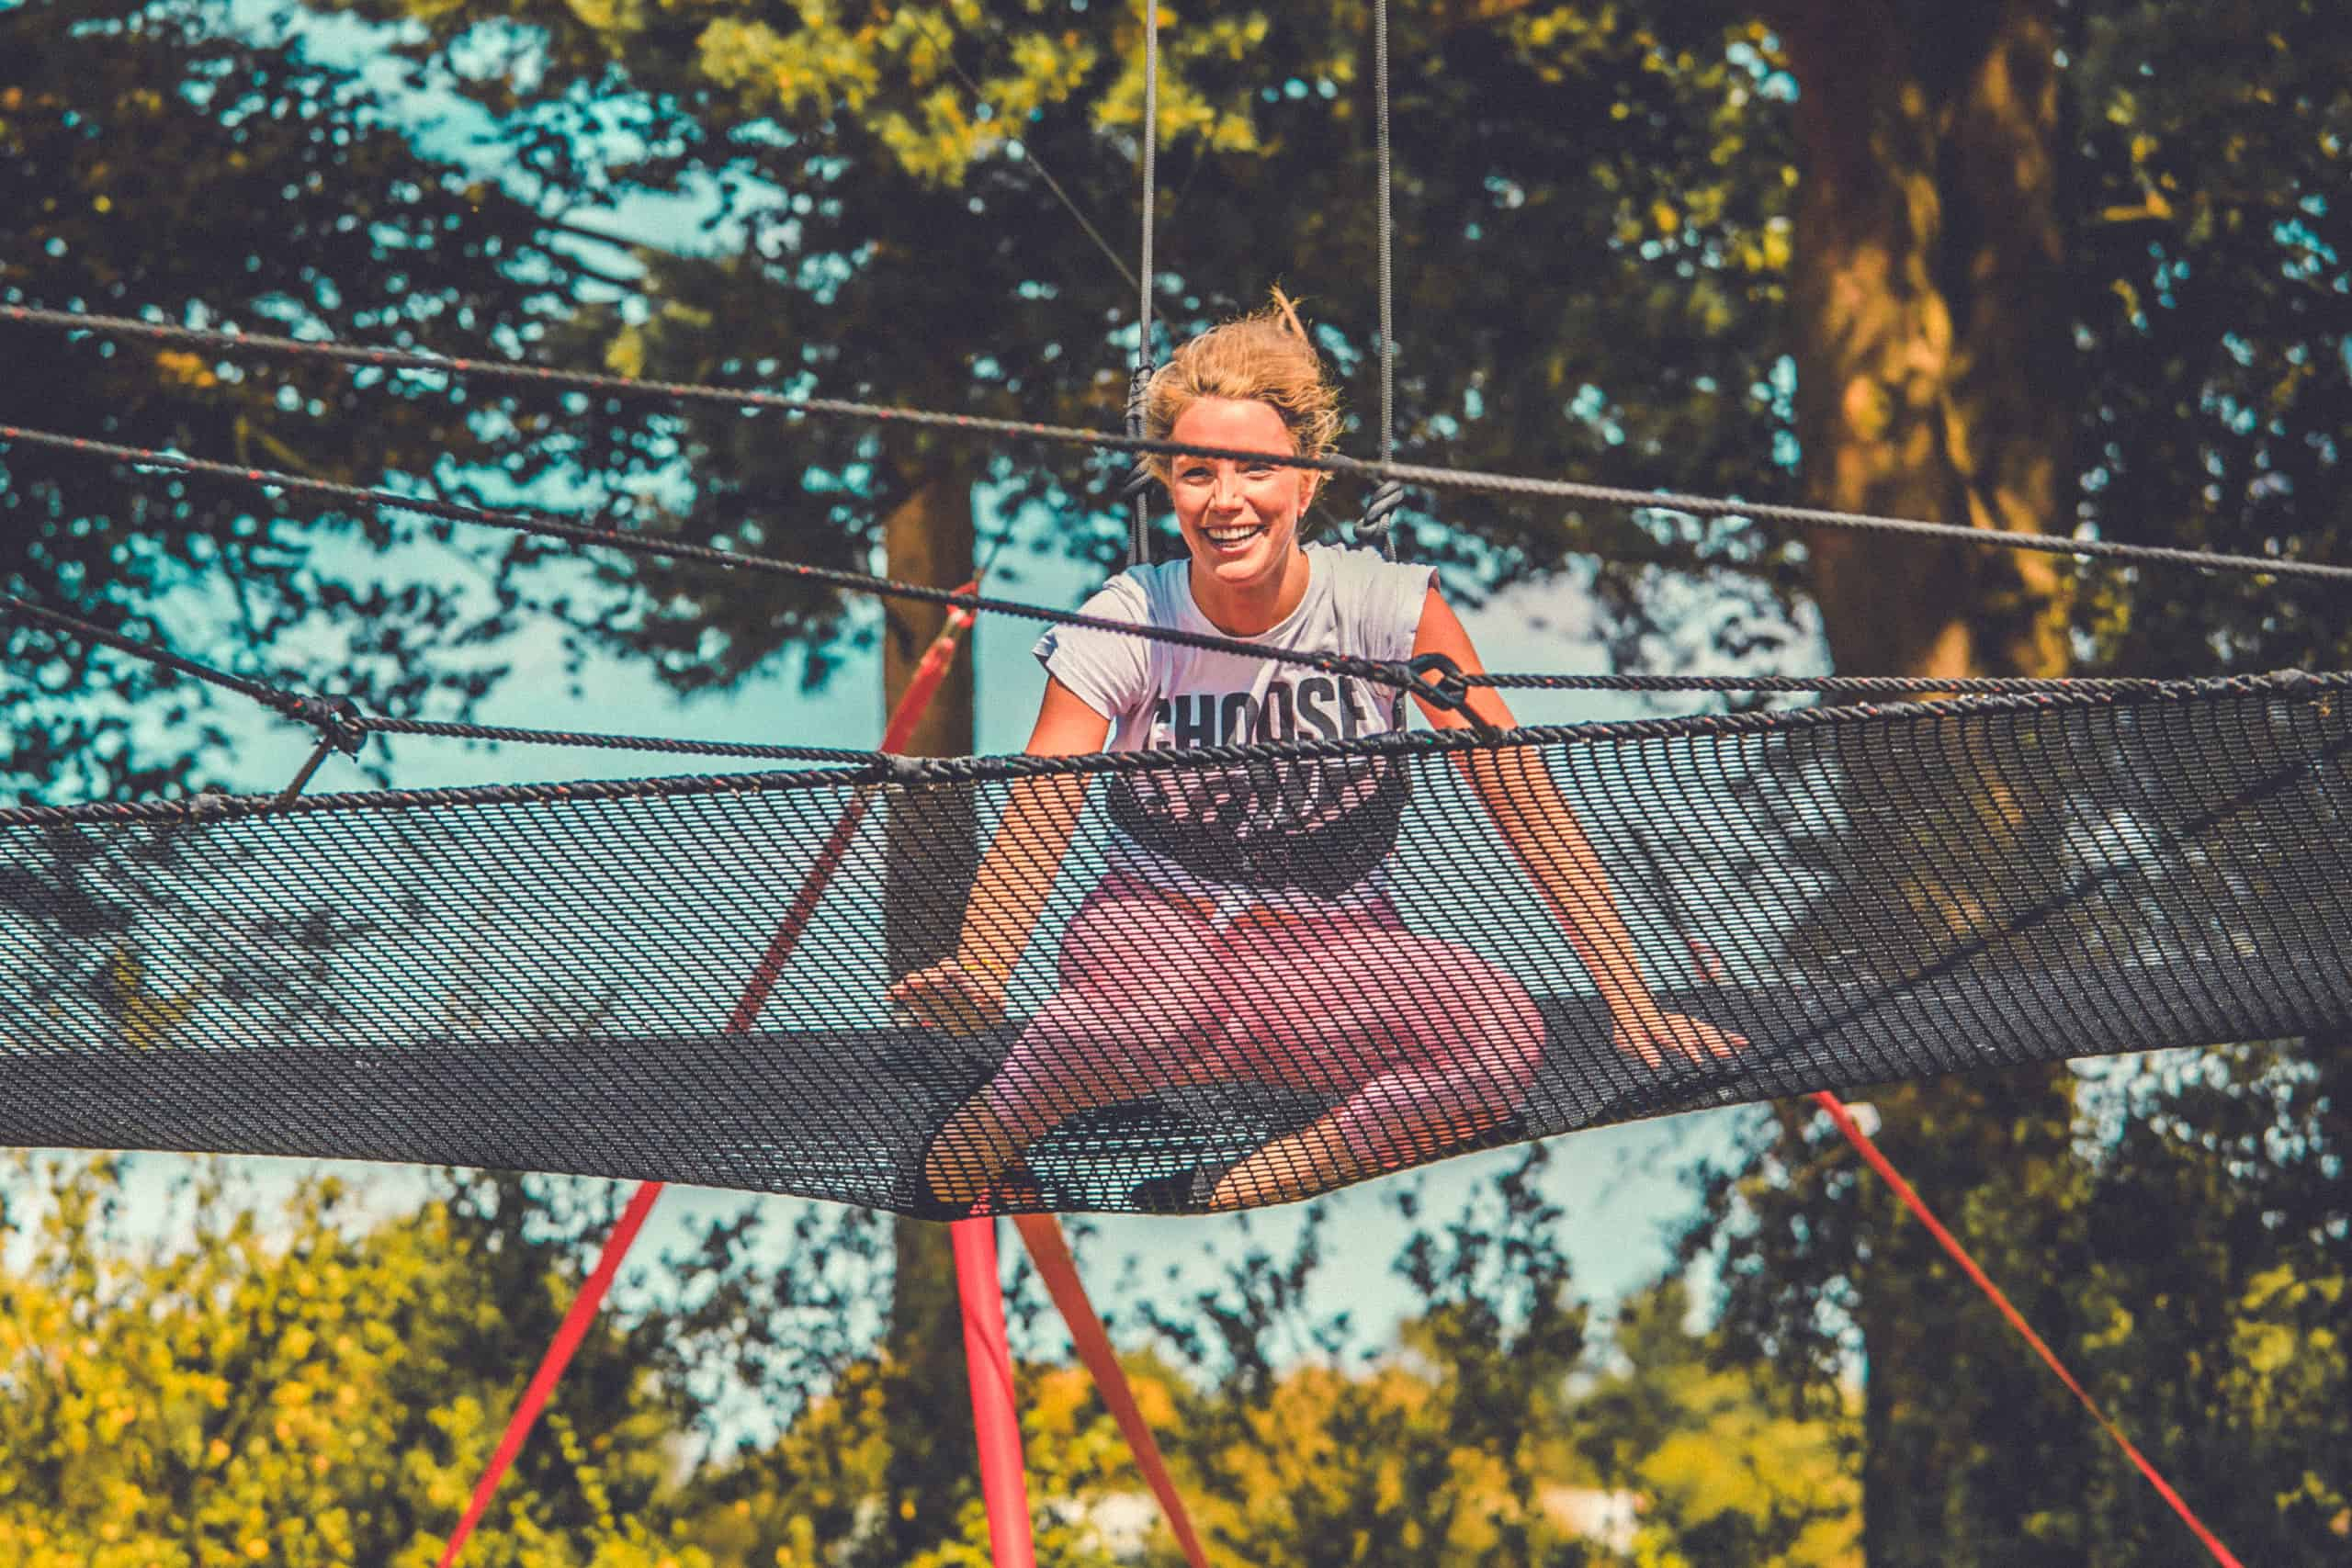 Girl with blonde hair smiling at the flying trapeze activity at Camp Wildfire. A summer weekend break in a forest near London and Kent. An outdoor woodland retreat featuring adventure activities, live music, DJs, parties and camping. Half summer adventure activity camp, half music festival, for adults only.